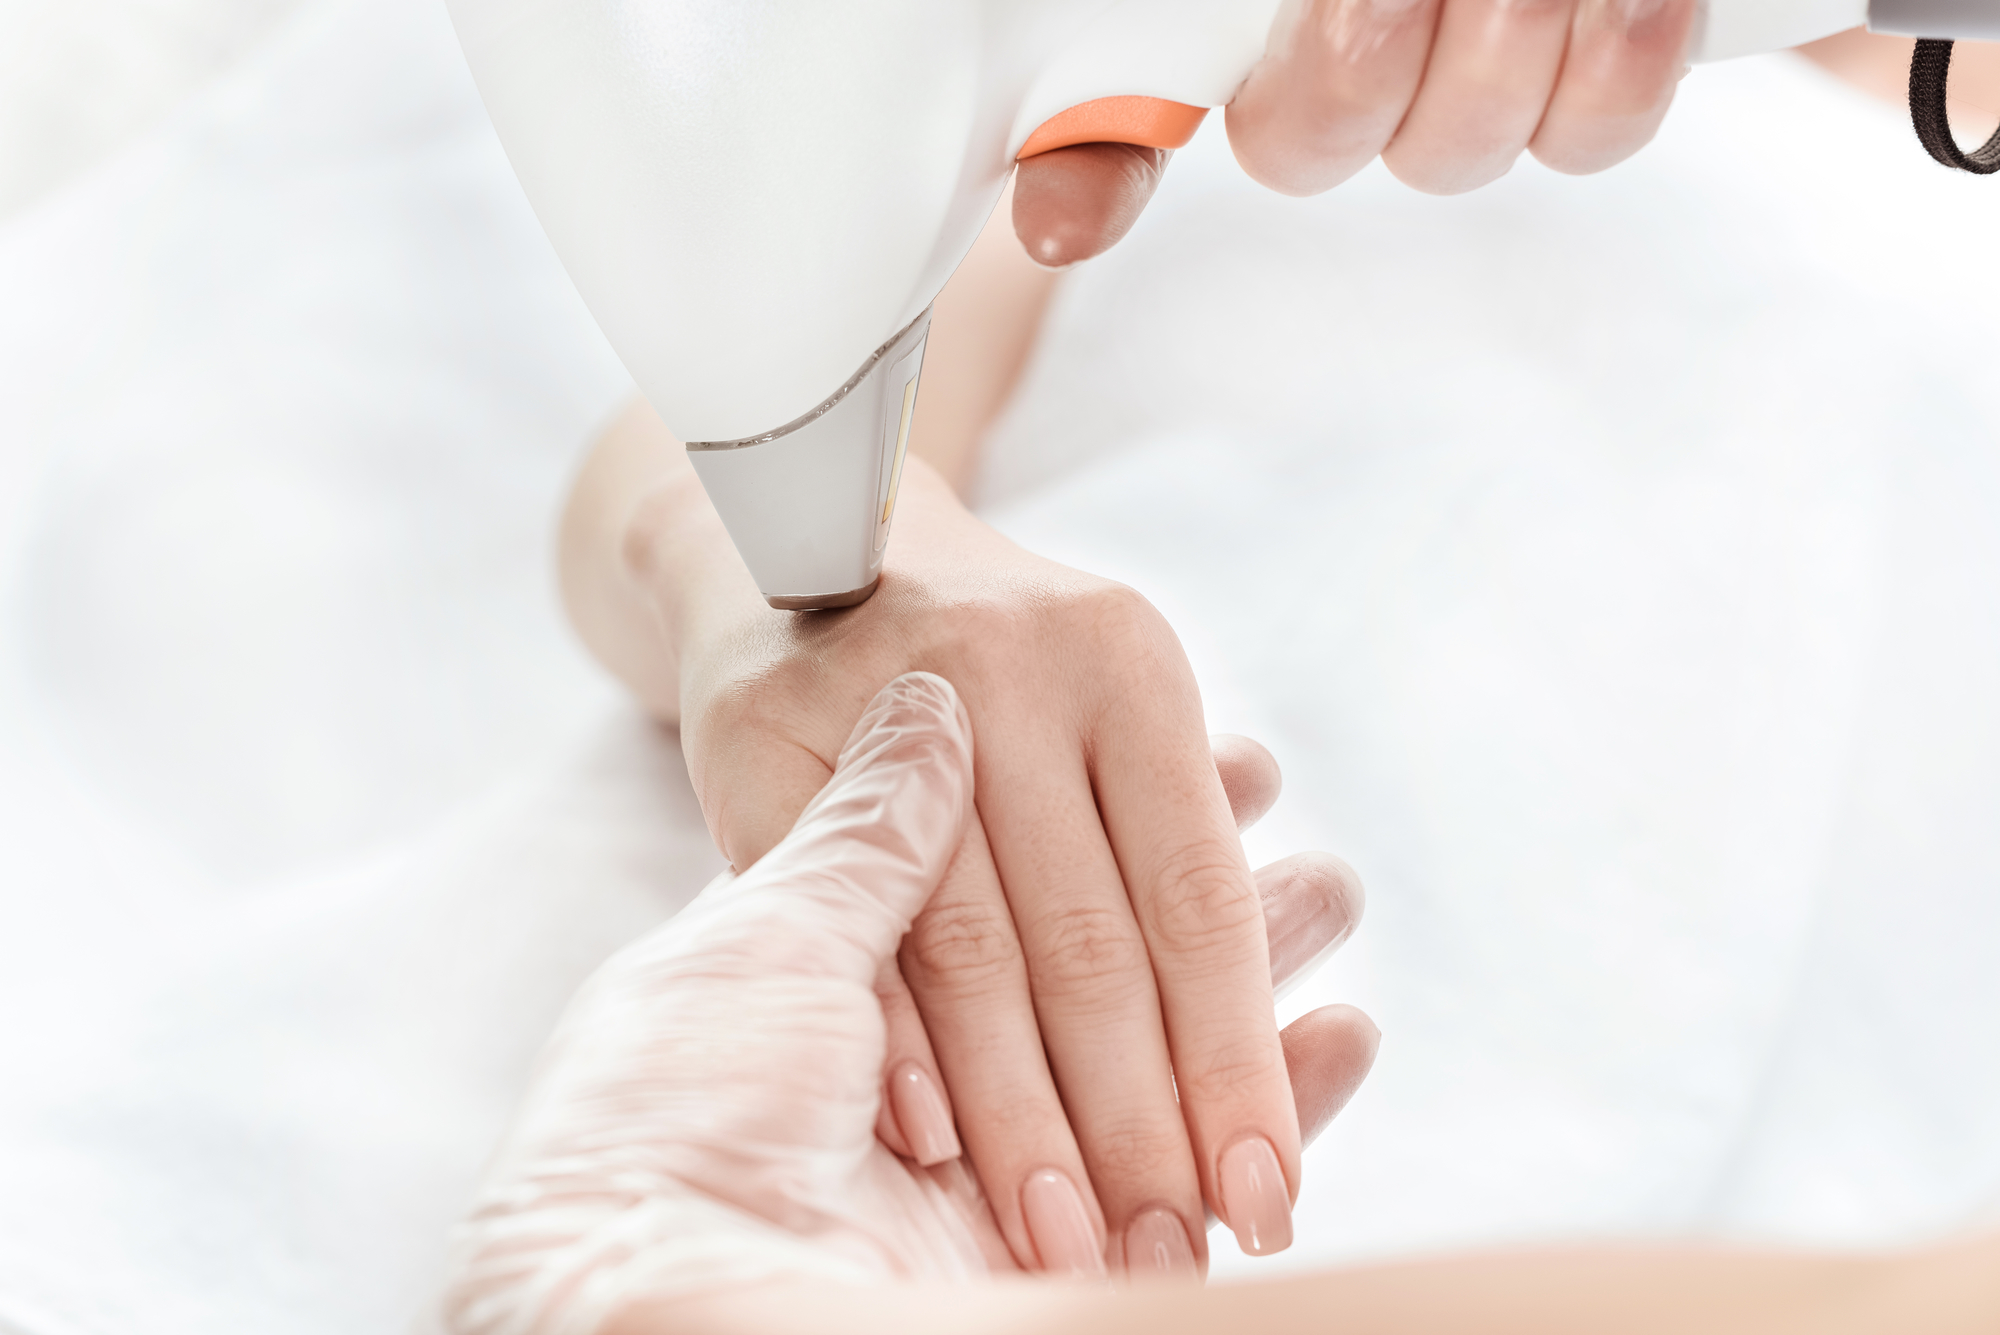 who is hte best medical spa in orlando near me?